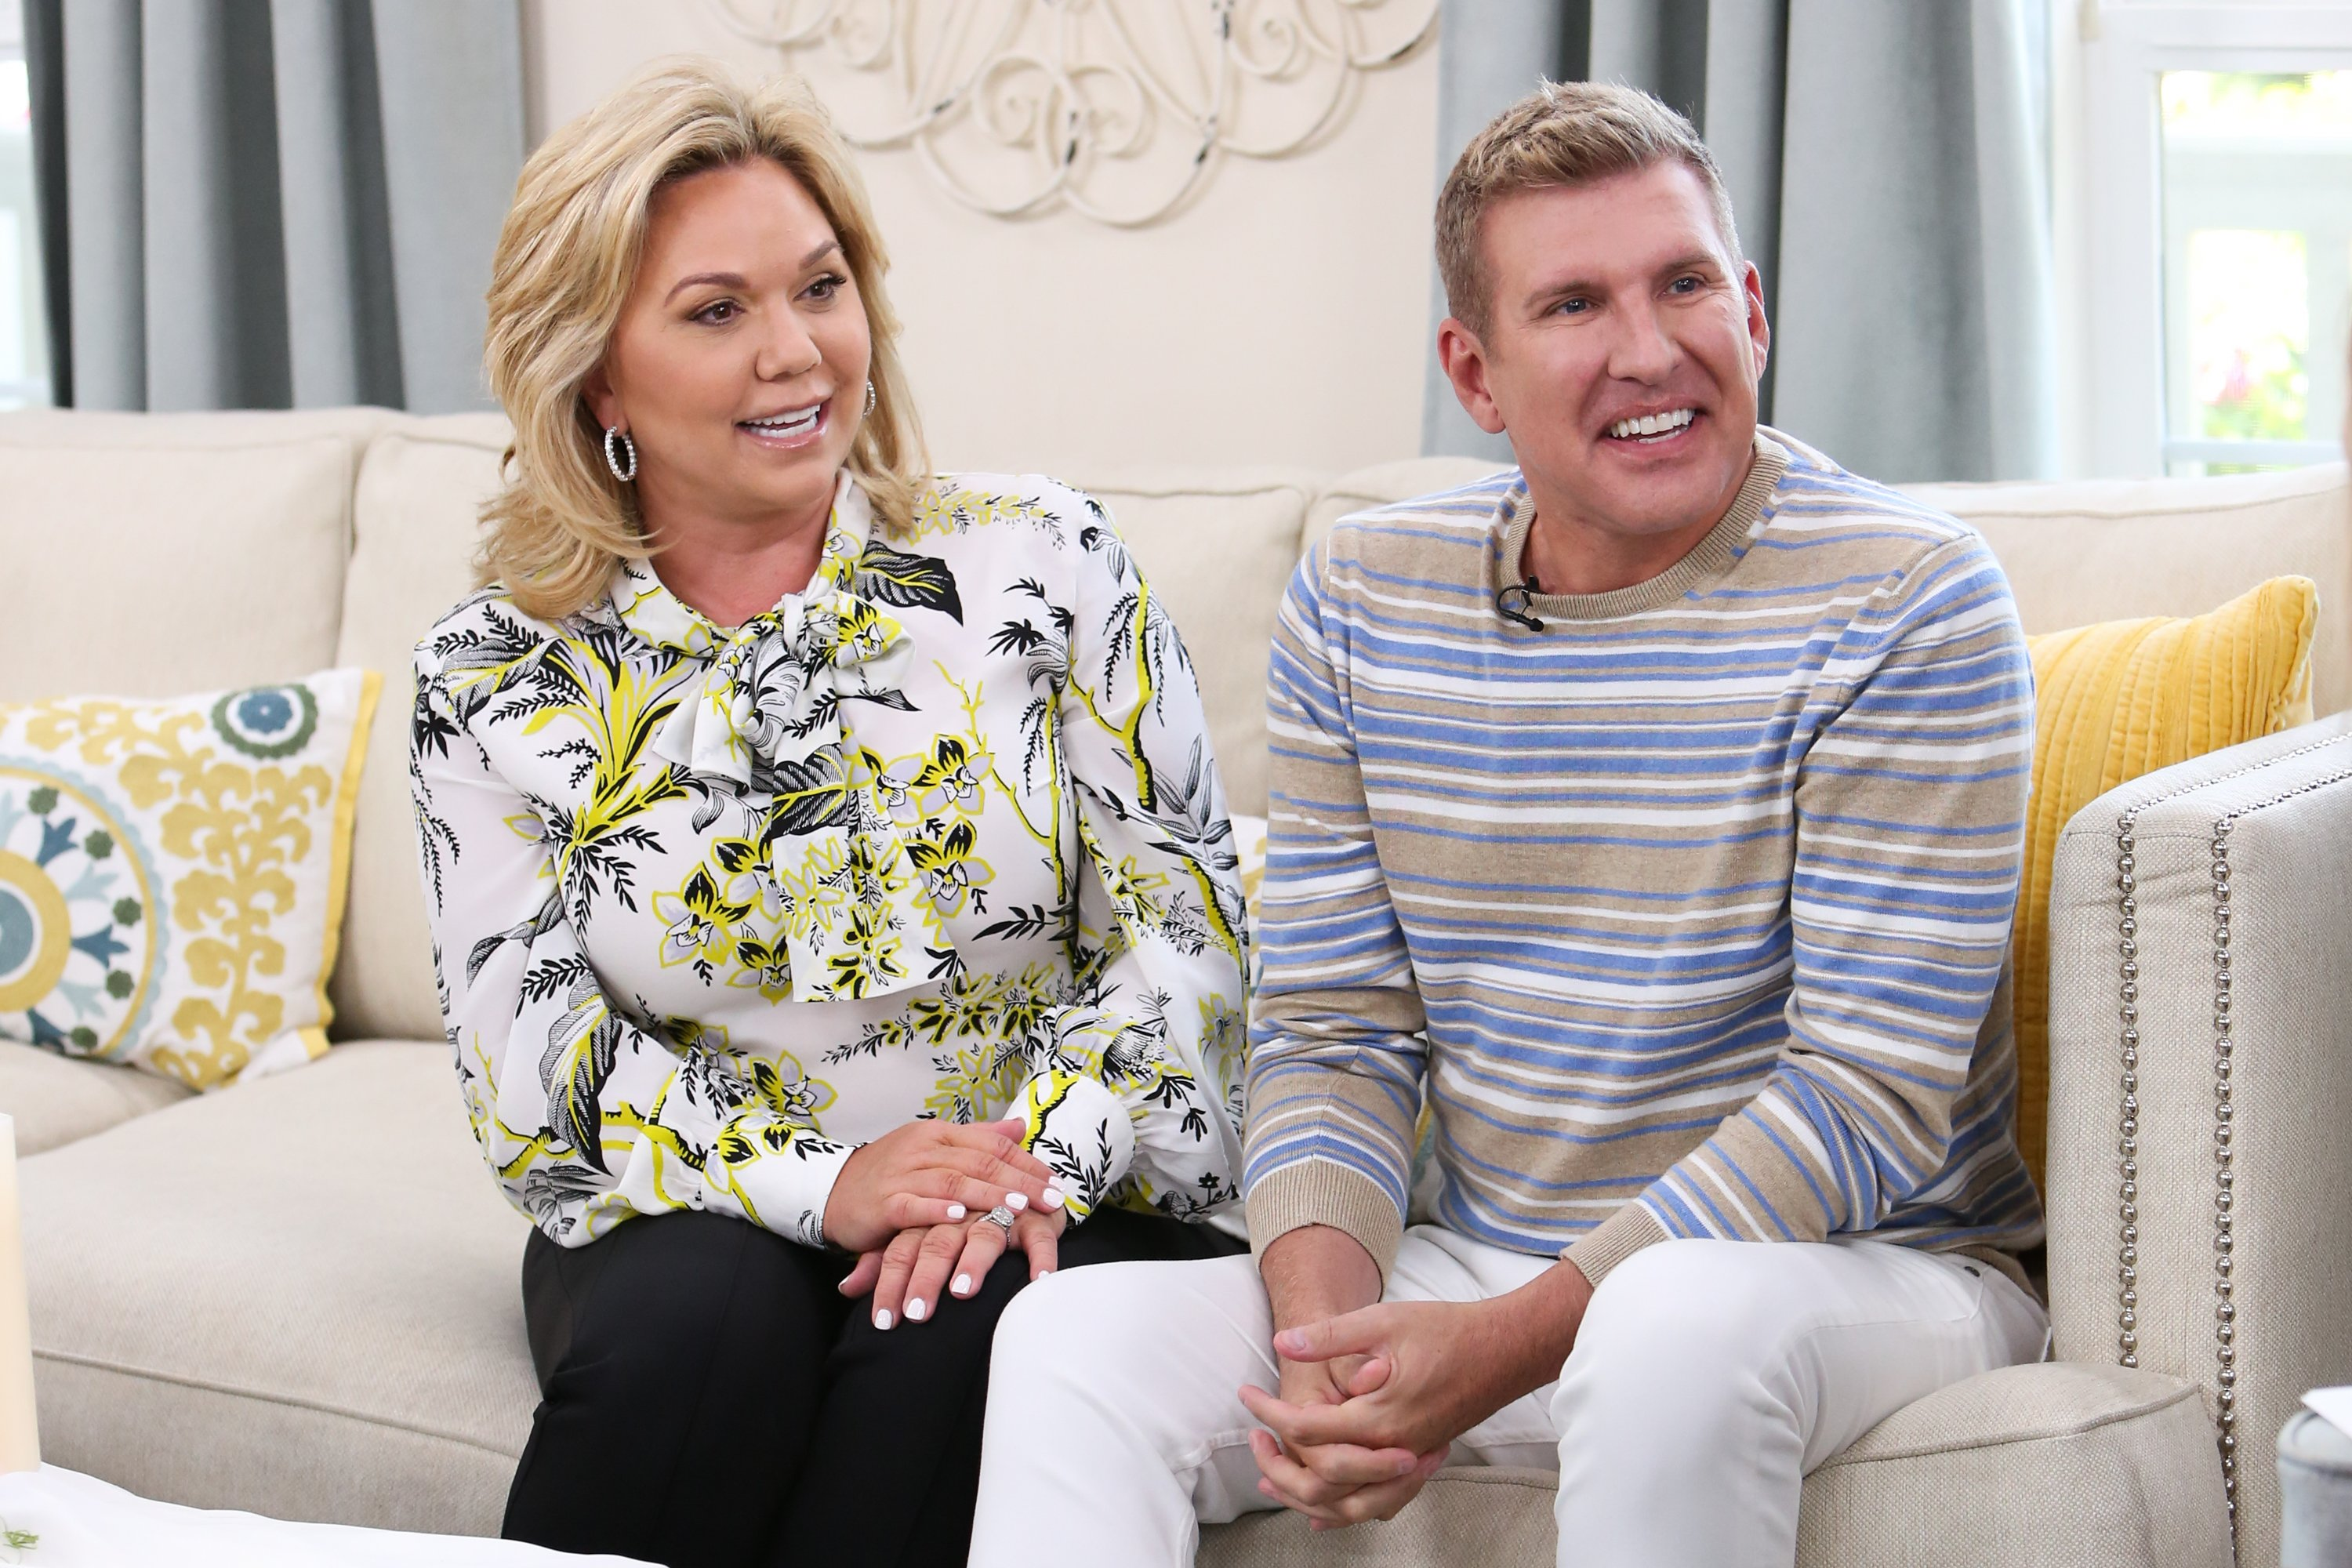 Julie and Todd Chrisley at Hallmark's 'Home & Family' at Universal Studios Hollywood on June 18, 2018 in Universal City, California | Photo: Getty Images